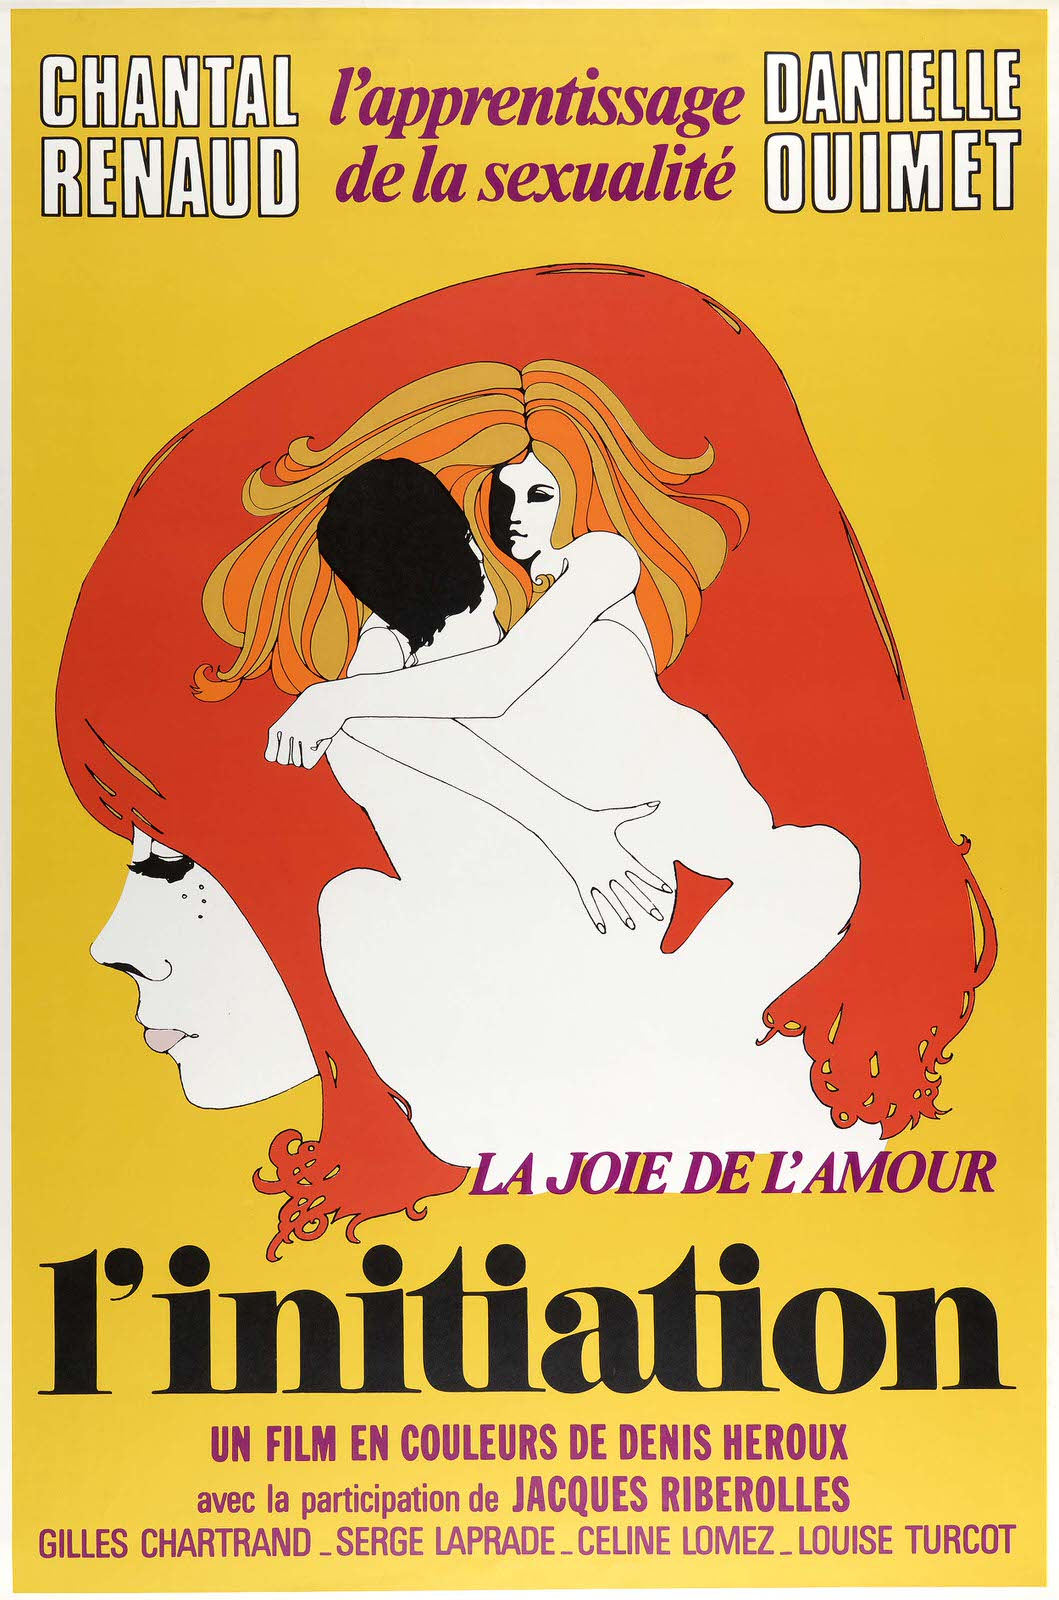 Jacques Delisle (Canadian, b. 1941) for CinÈpix Film Properties, Inc. (CFP) (Montreal, Canada). LíInitiation, 1970. Offset lithograph. 101.6 x 68.6 cm (40 x 27 in.). Gift of Sara and Marc Benda, 2010-21-97. Photo by Matt Flynn.